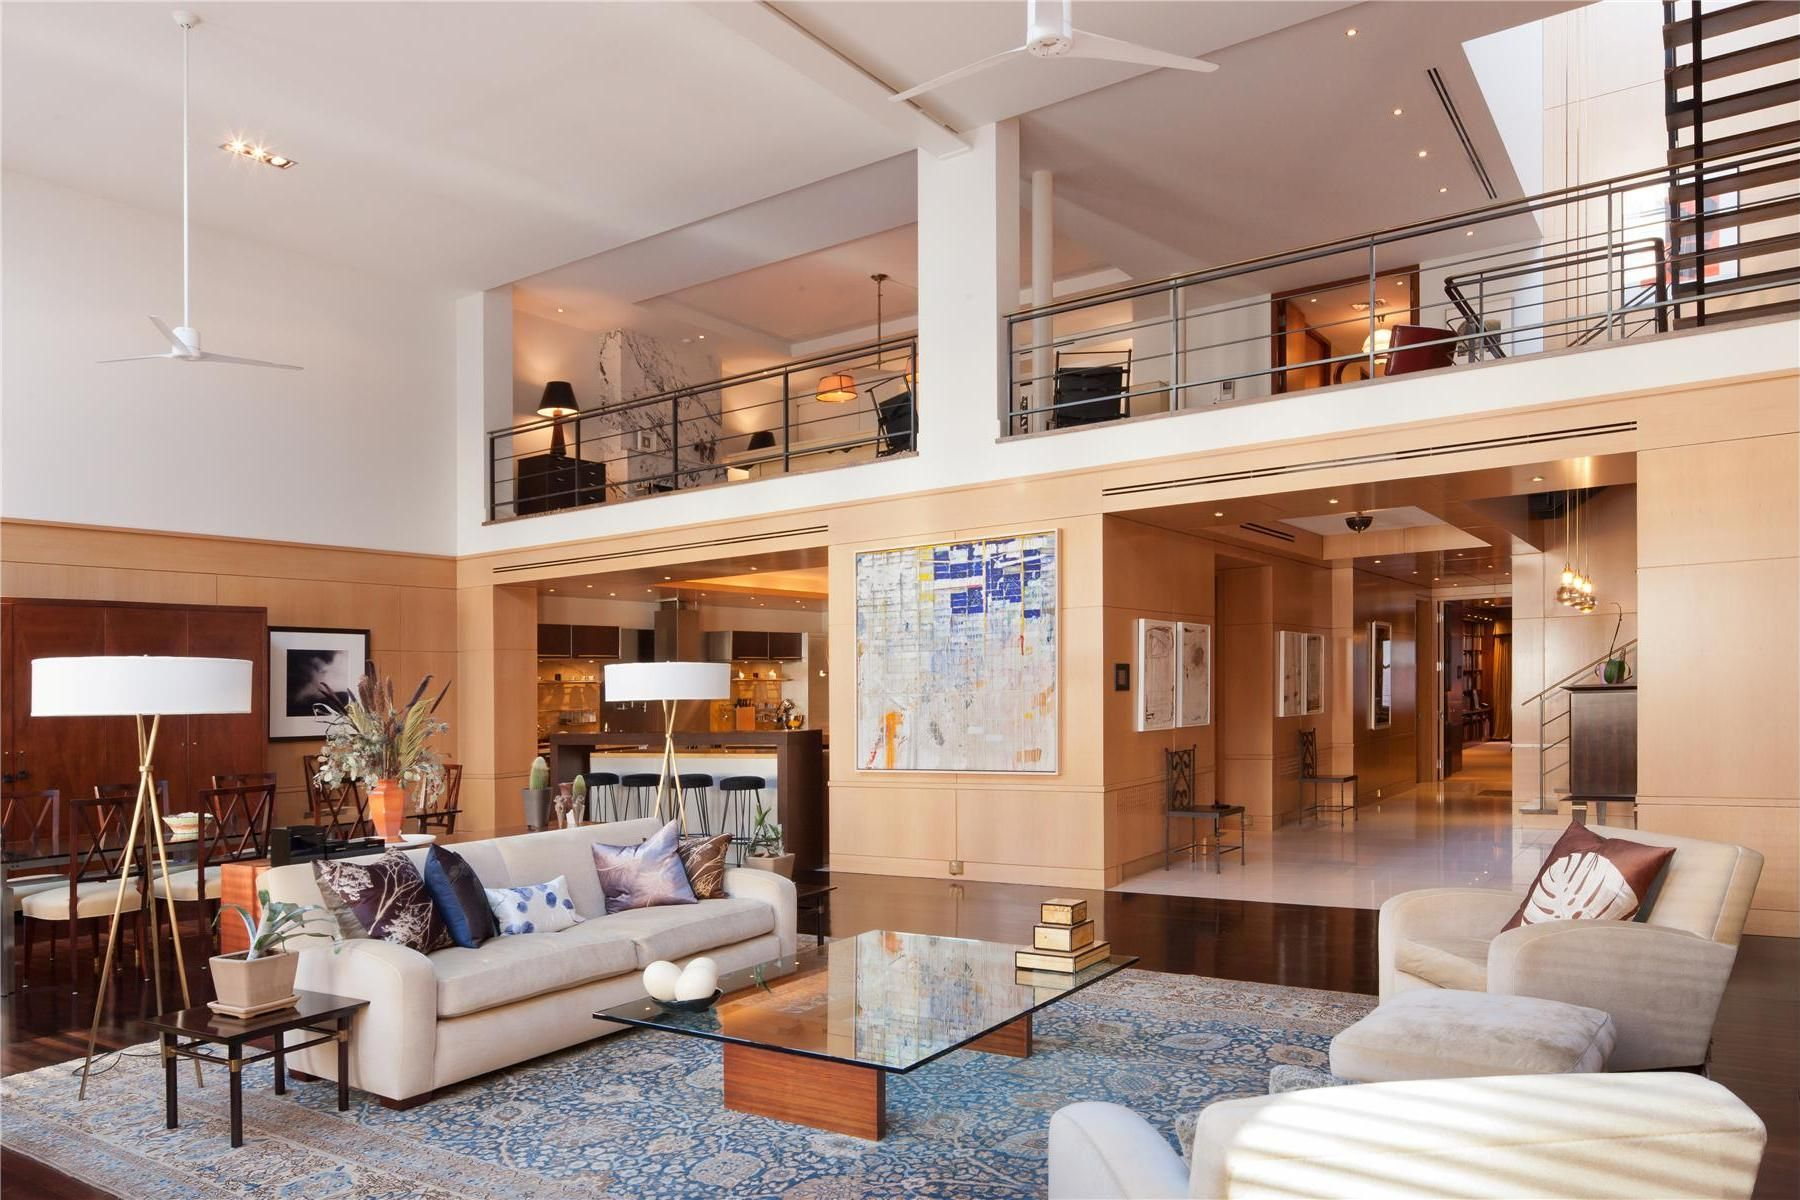 exclusive penthouse new york - Google keresés | Real Architecture ...